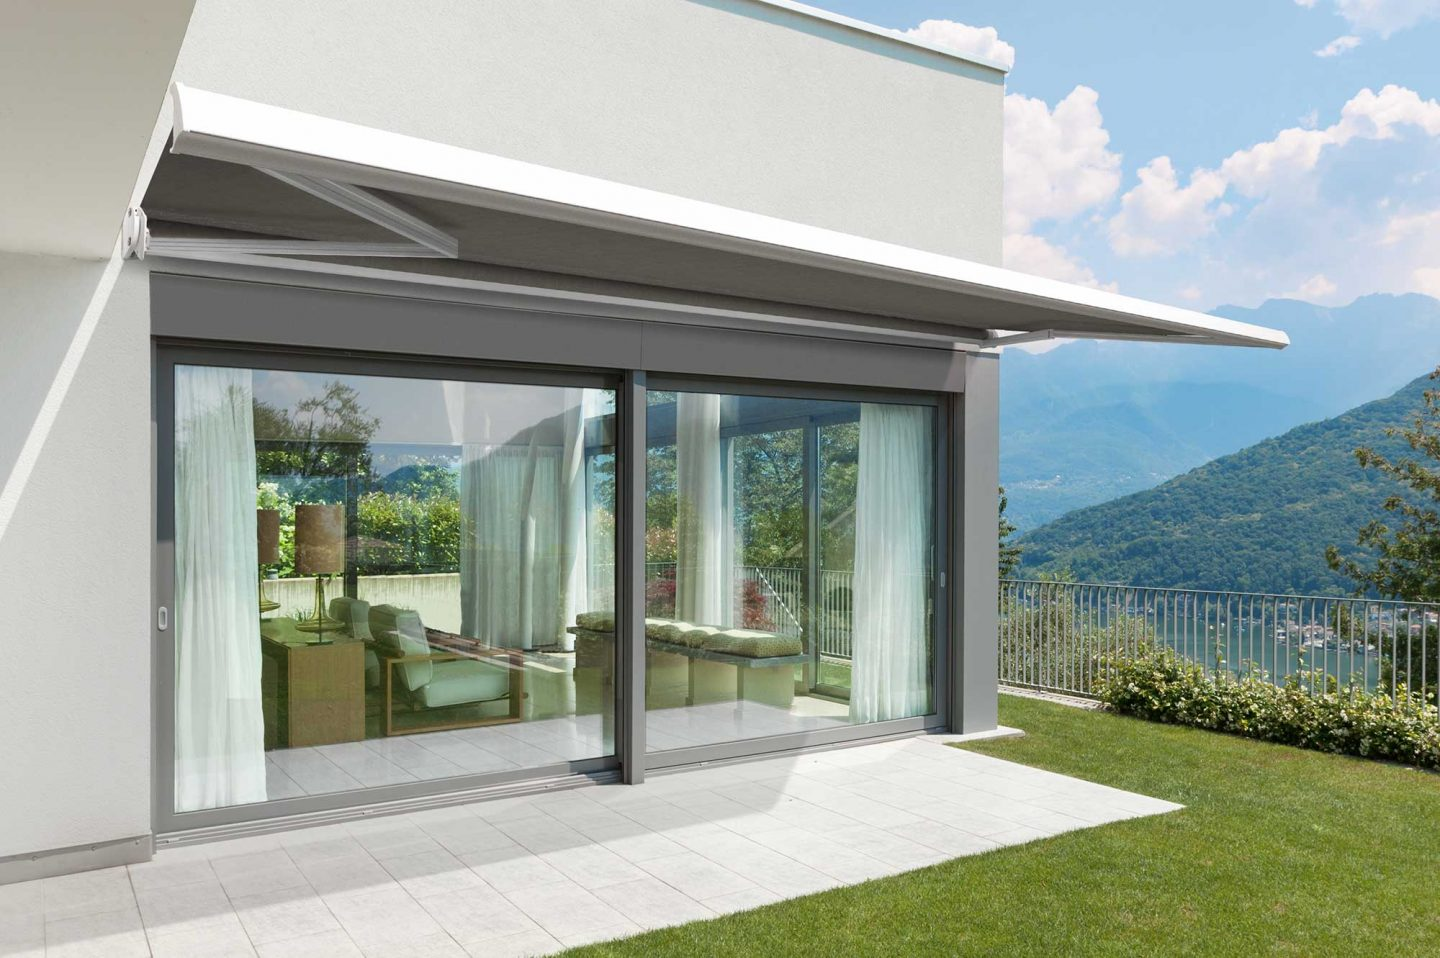 We create versatile, beautiful outdoor spaces that connect seamlessly to homes and gardens, while providing shelter from the elements. As innovators of outdoor-living solutions in New Zealand for many years, Shade Elements has become an industry leader of awnings, screens and retractable pergolas. Our products respond to our unique environment and help New Zealanders to enjoy and enhance the courtyards, sheltered retreats and outdoor rooms that have become part of our country's contemporary design. Shade Elements' spaces are harmonious spaces in which to relax and entertain. As market leaders, we source the best, most innovative products from around the world – including Japan, France, Spain and Australia – to provide quality solutions with longevity in mind.